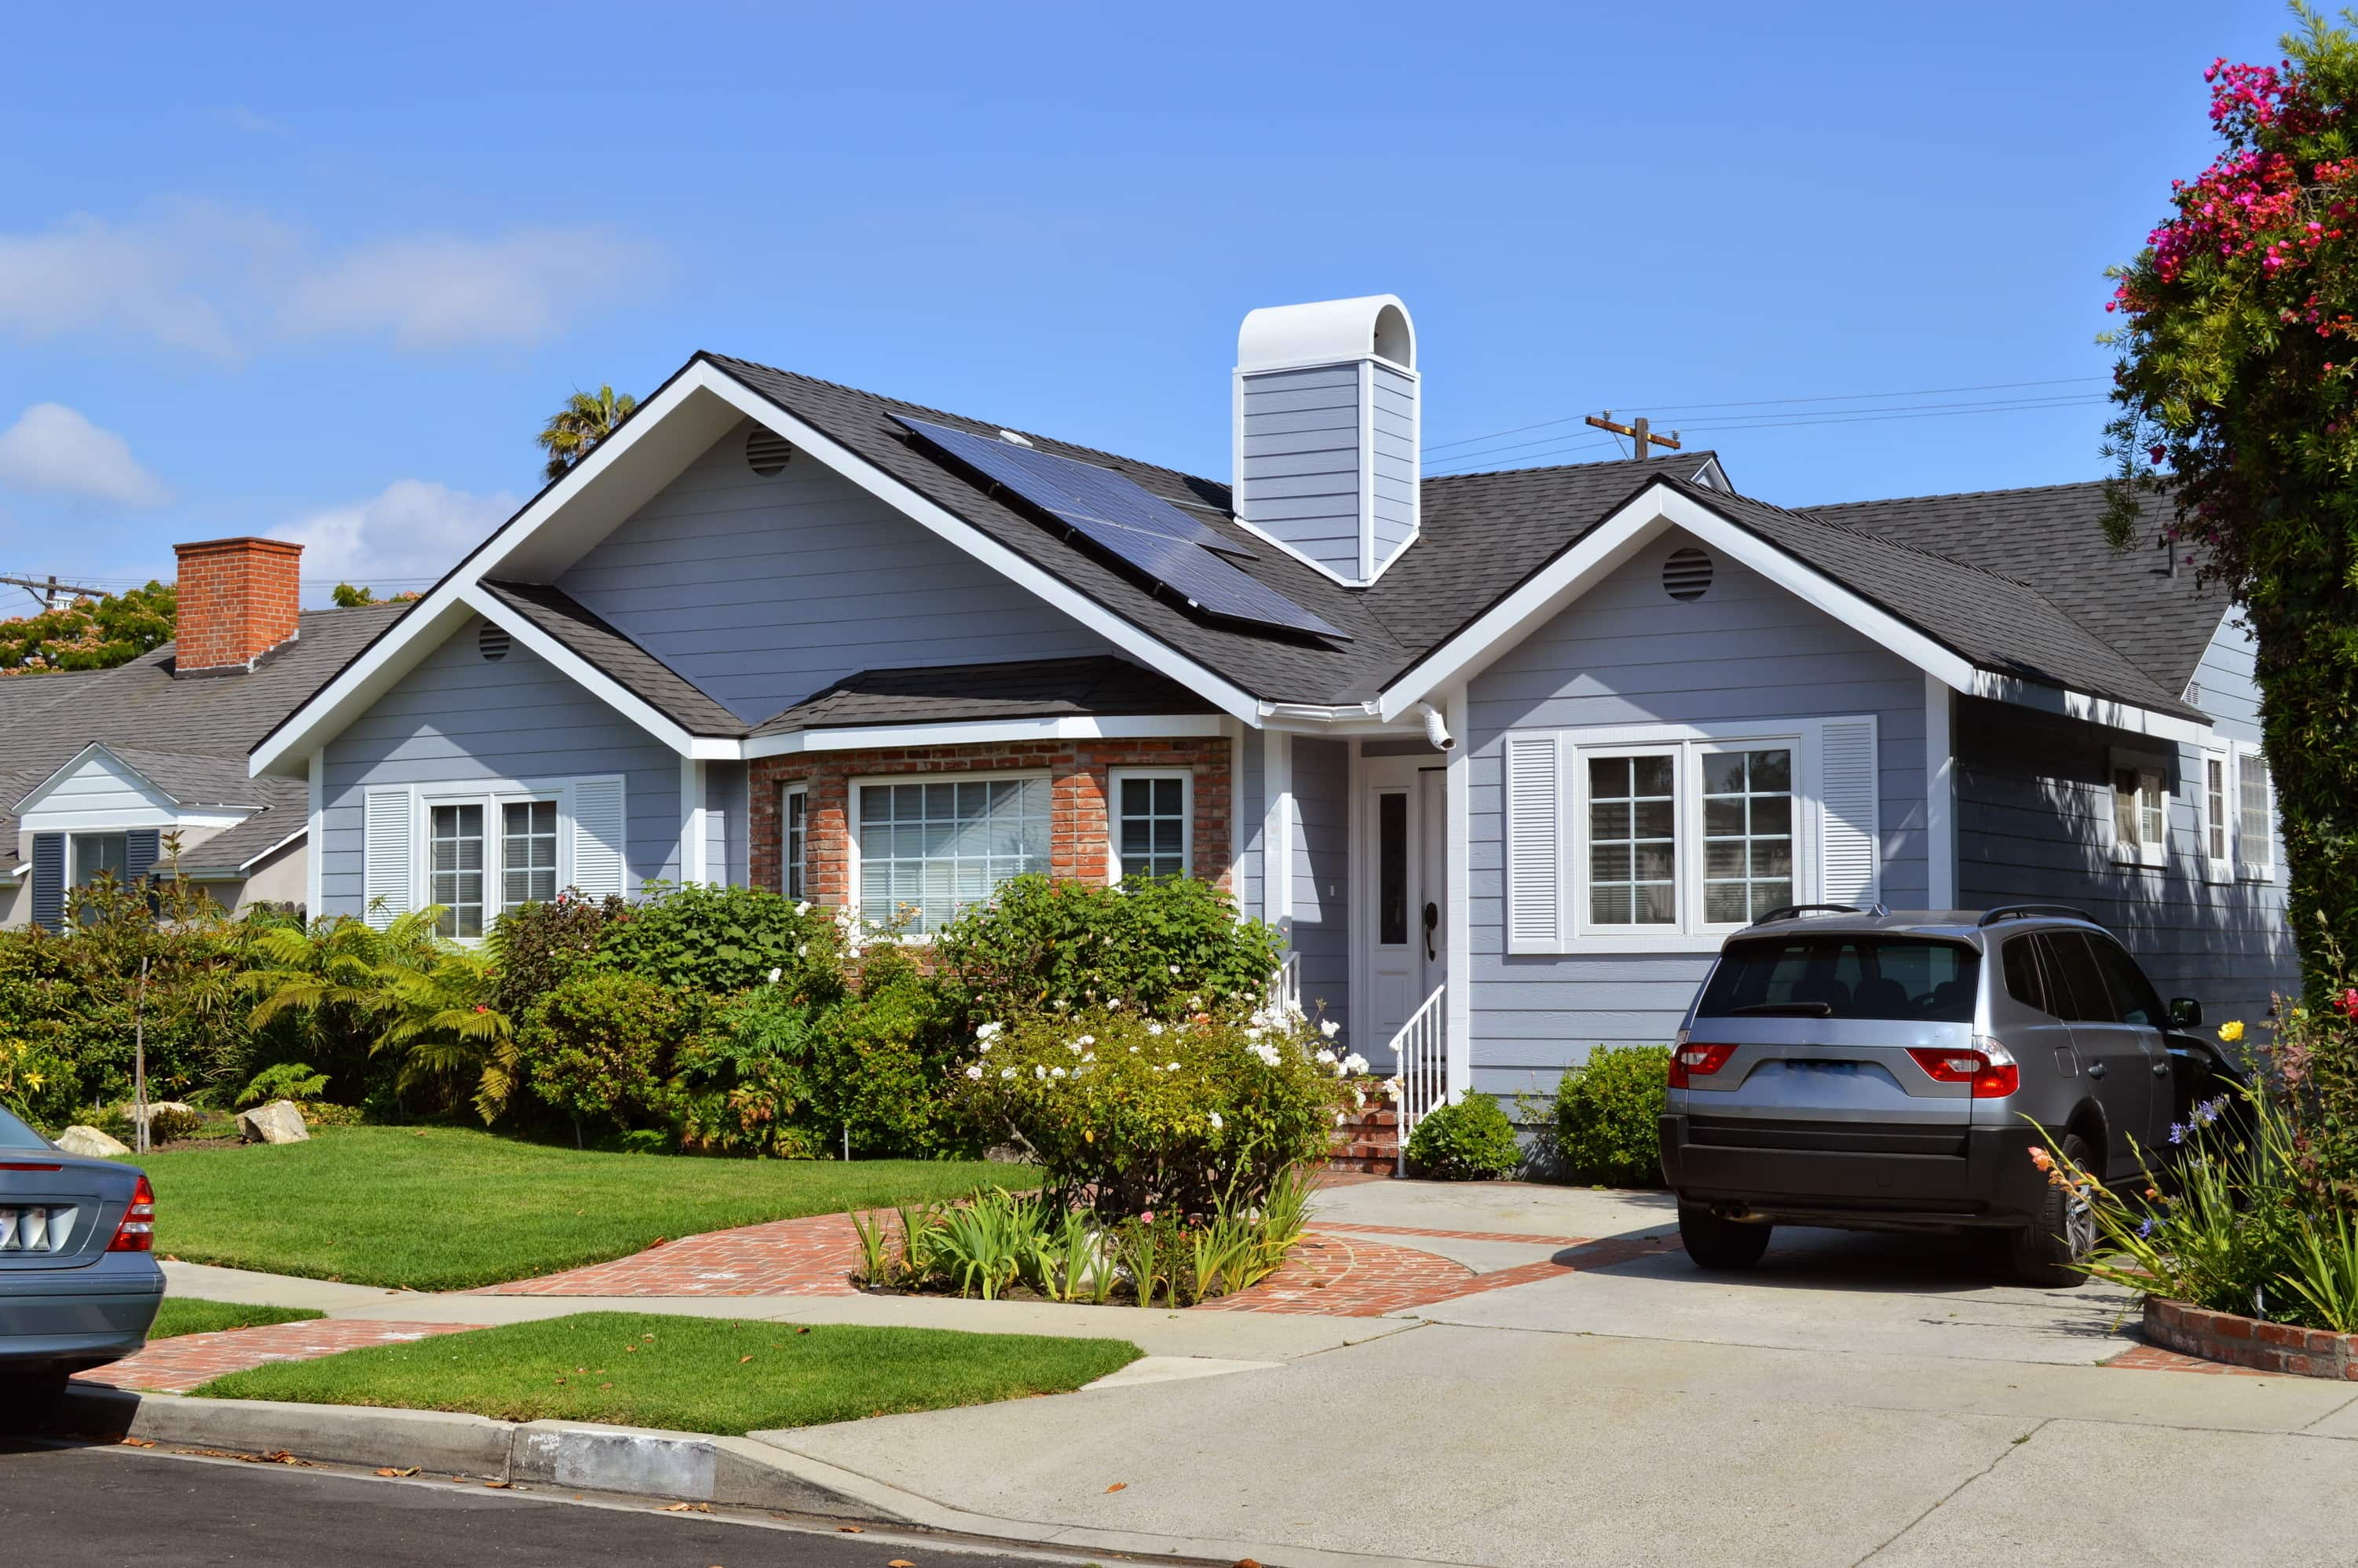 Net metering allows you to sell extra power back to your utility